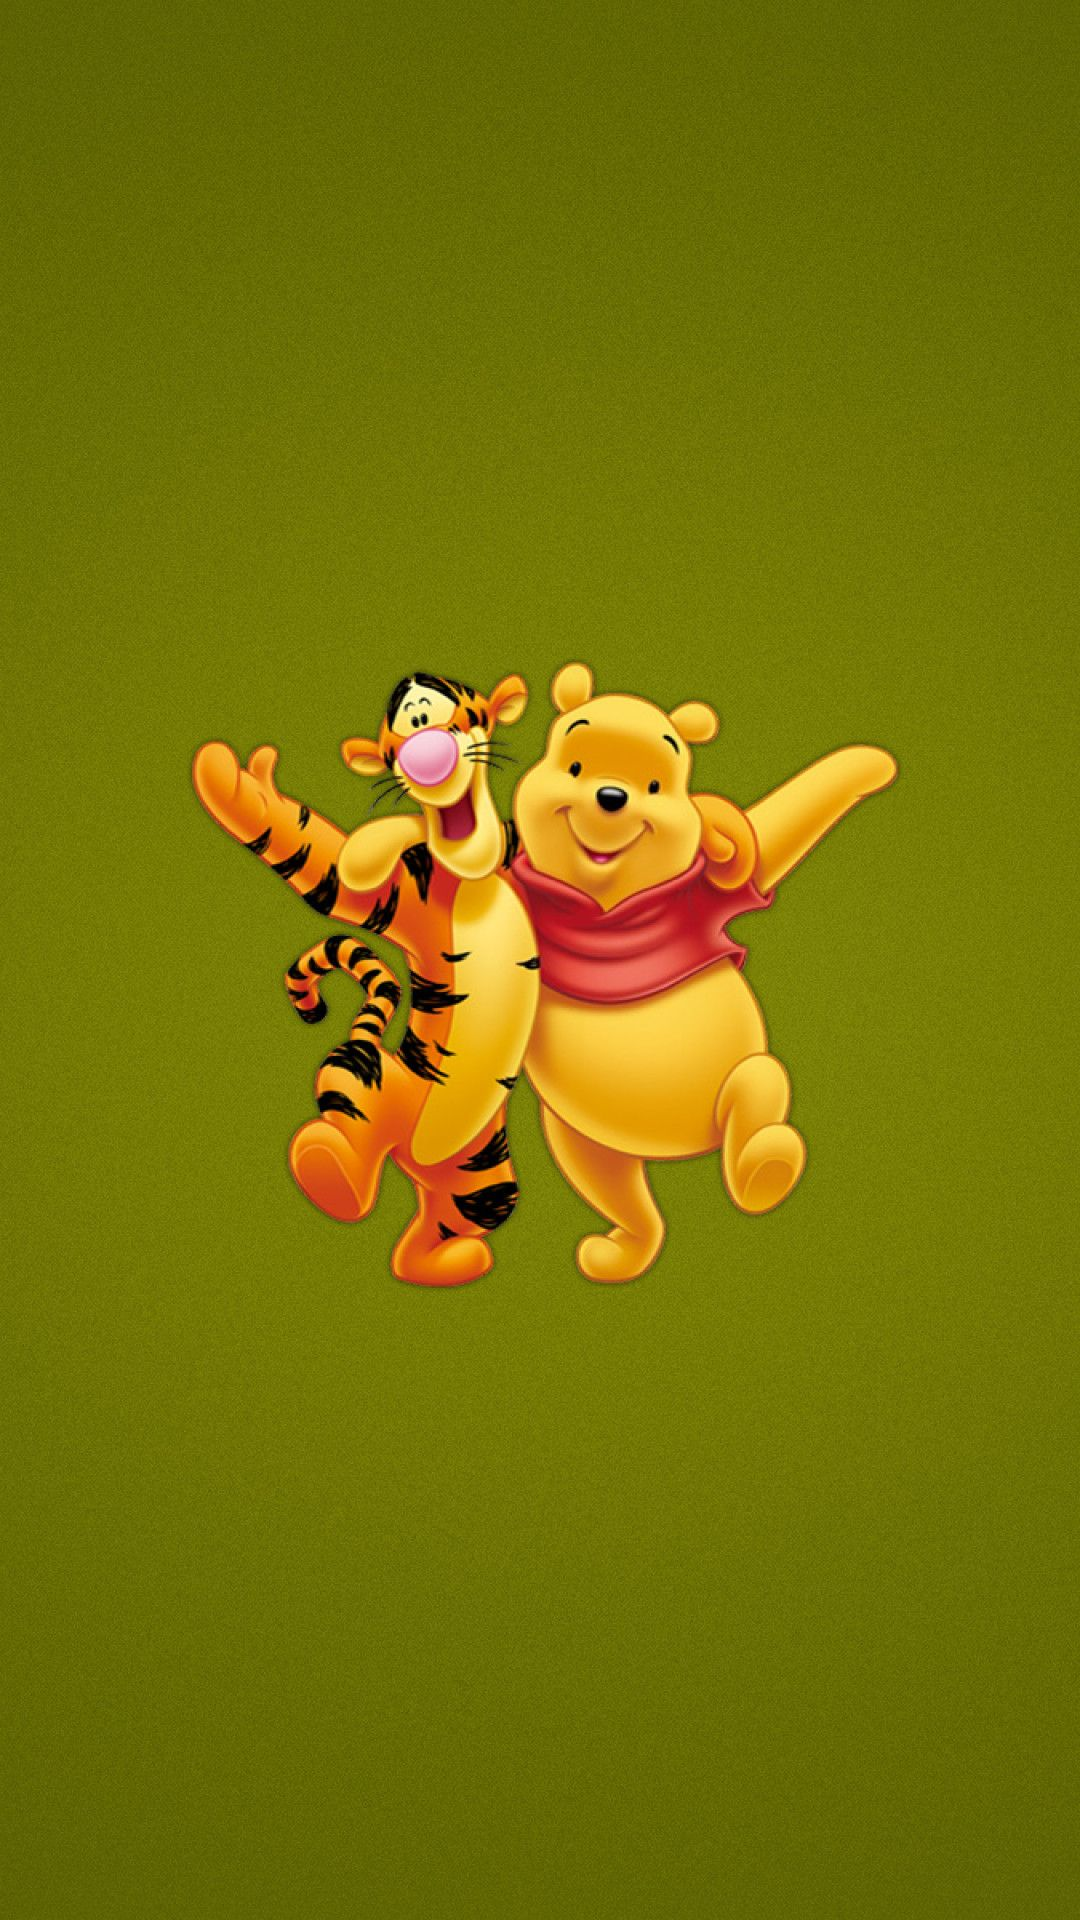 Winnie The Pooh Iphone Wallpapers Top Free Winnie The Pooh Iphone Backgrounds Wallpaperaccess